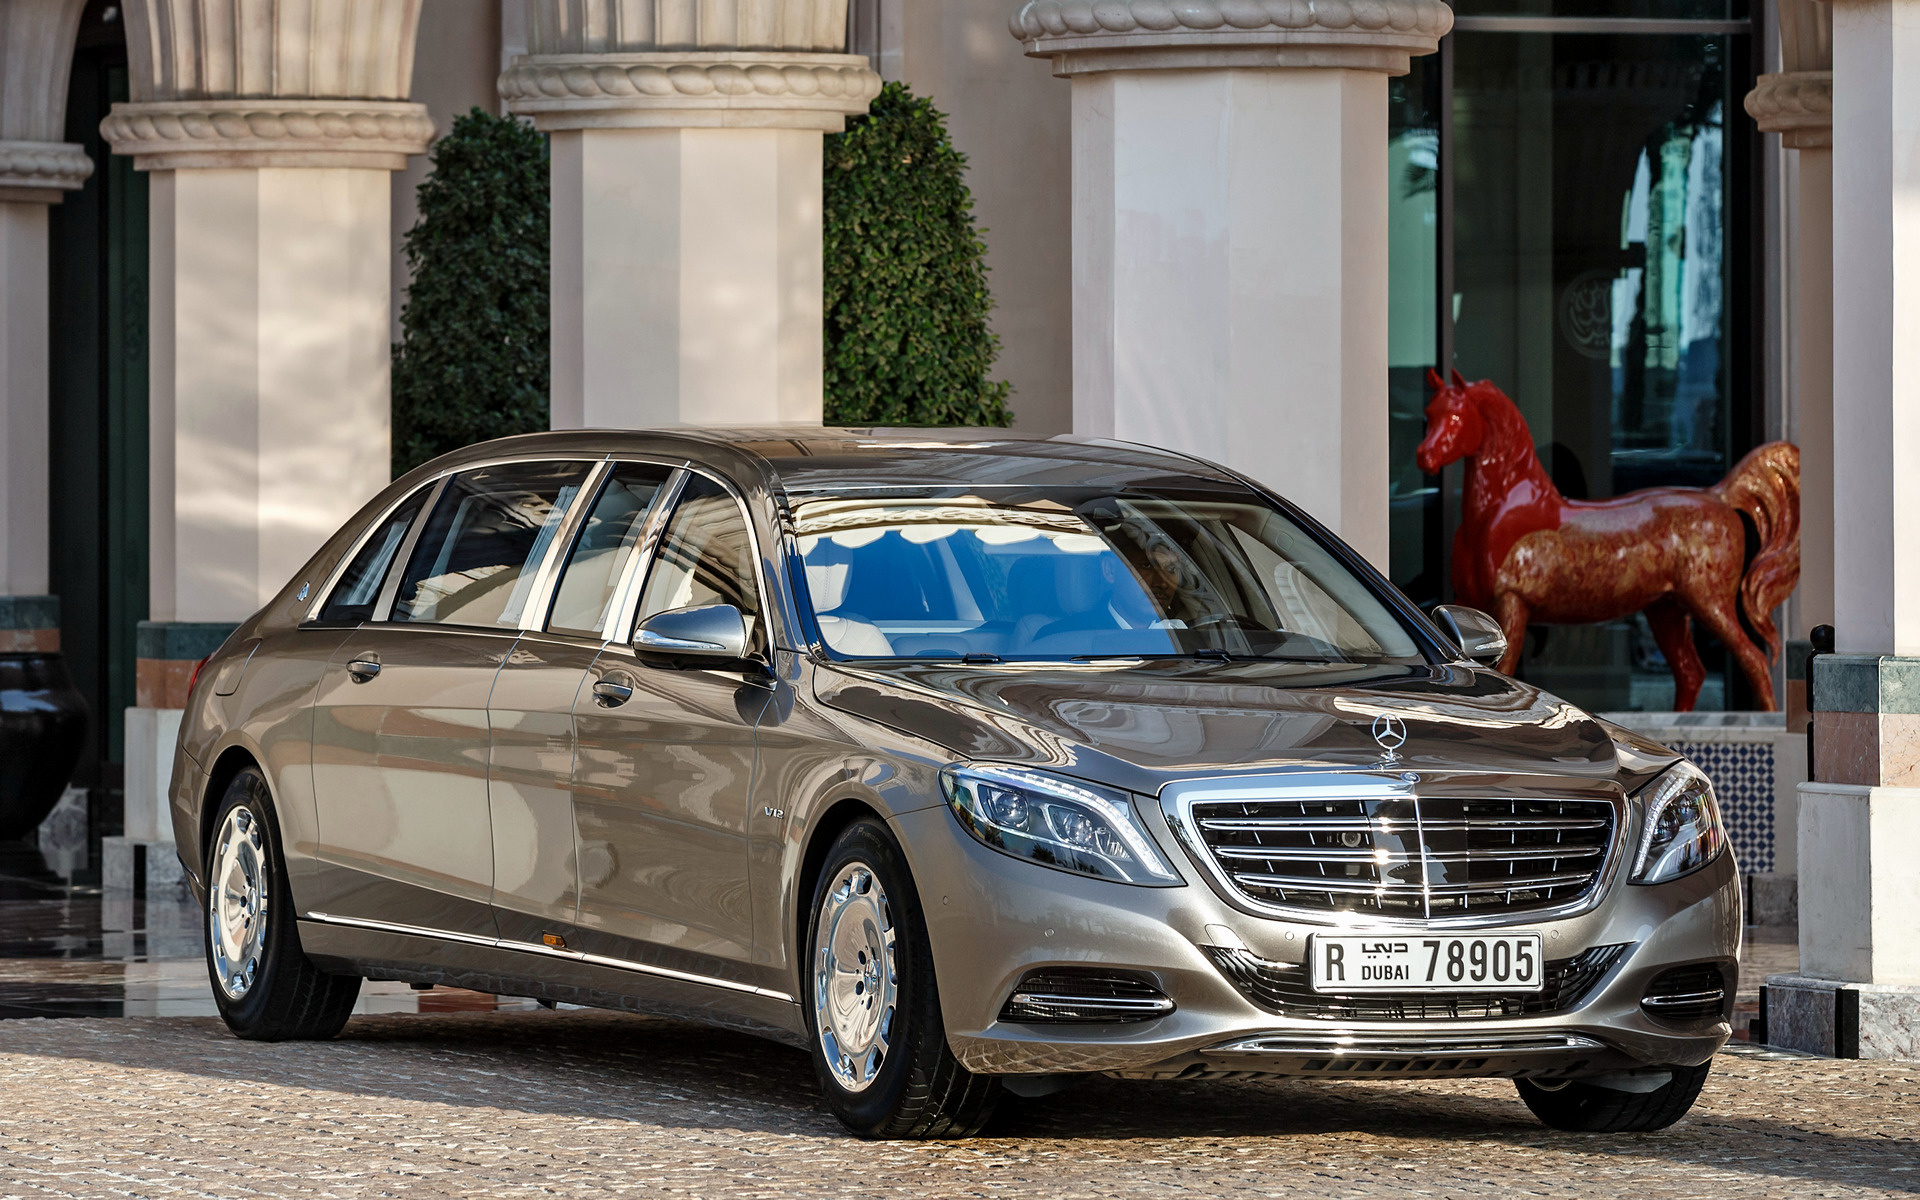 https://www.carpixel.net/w/6e6304927ed6d5b251bf3e90f3f65660/mercedes-maybach-s-class-pullman-car-wallpaper-38612.jpg